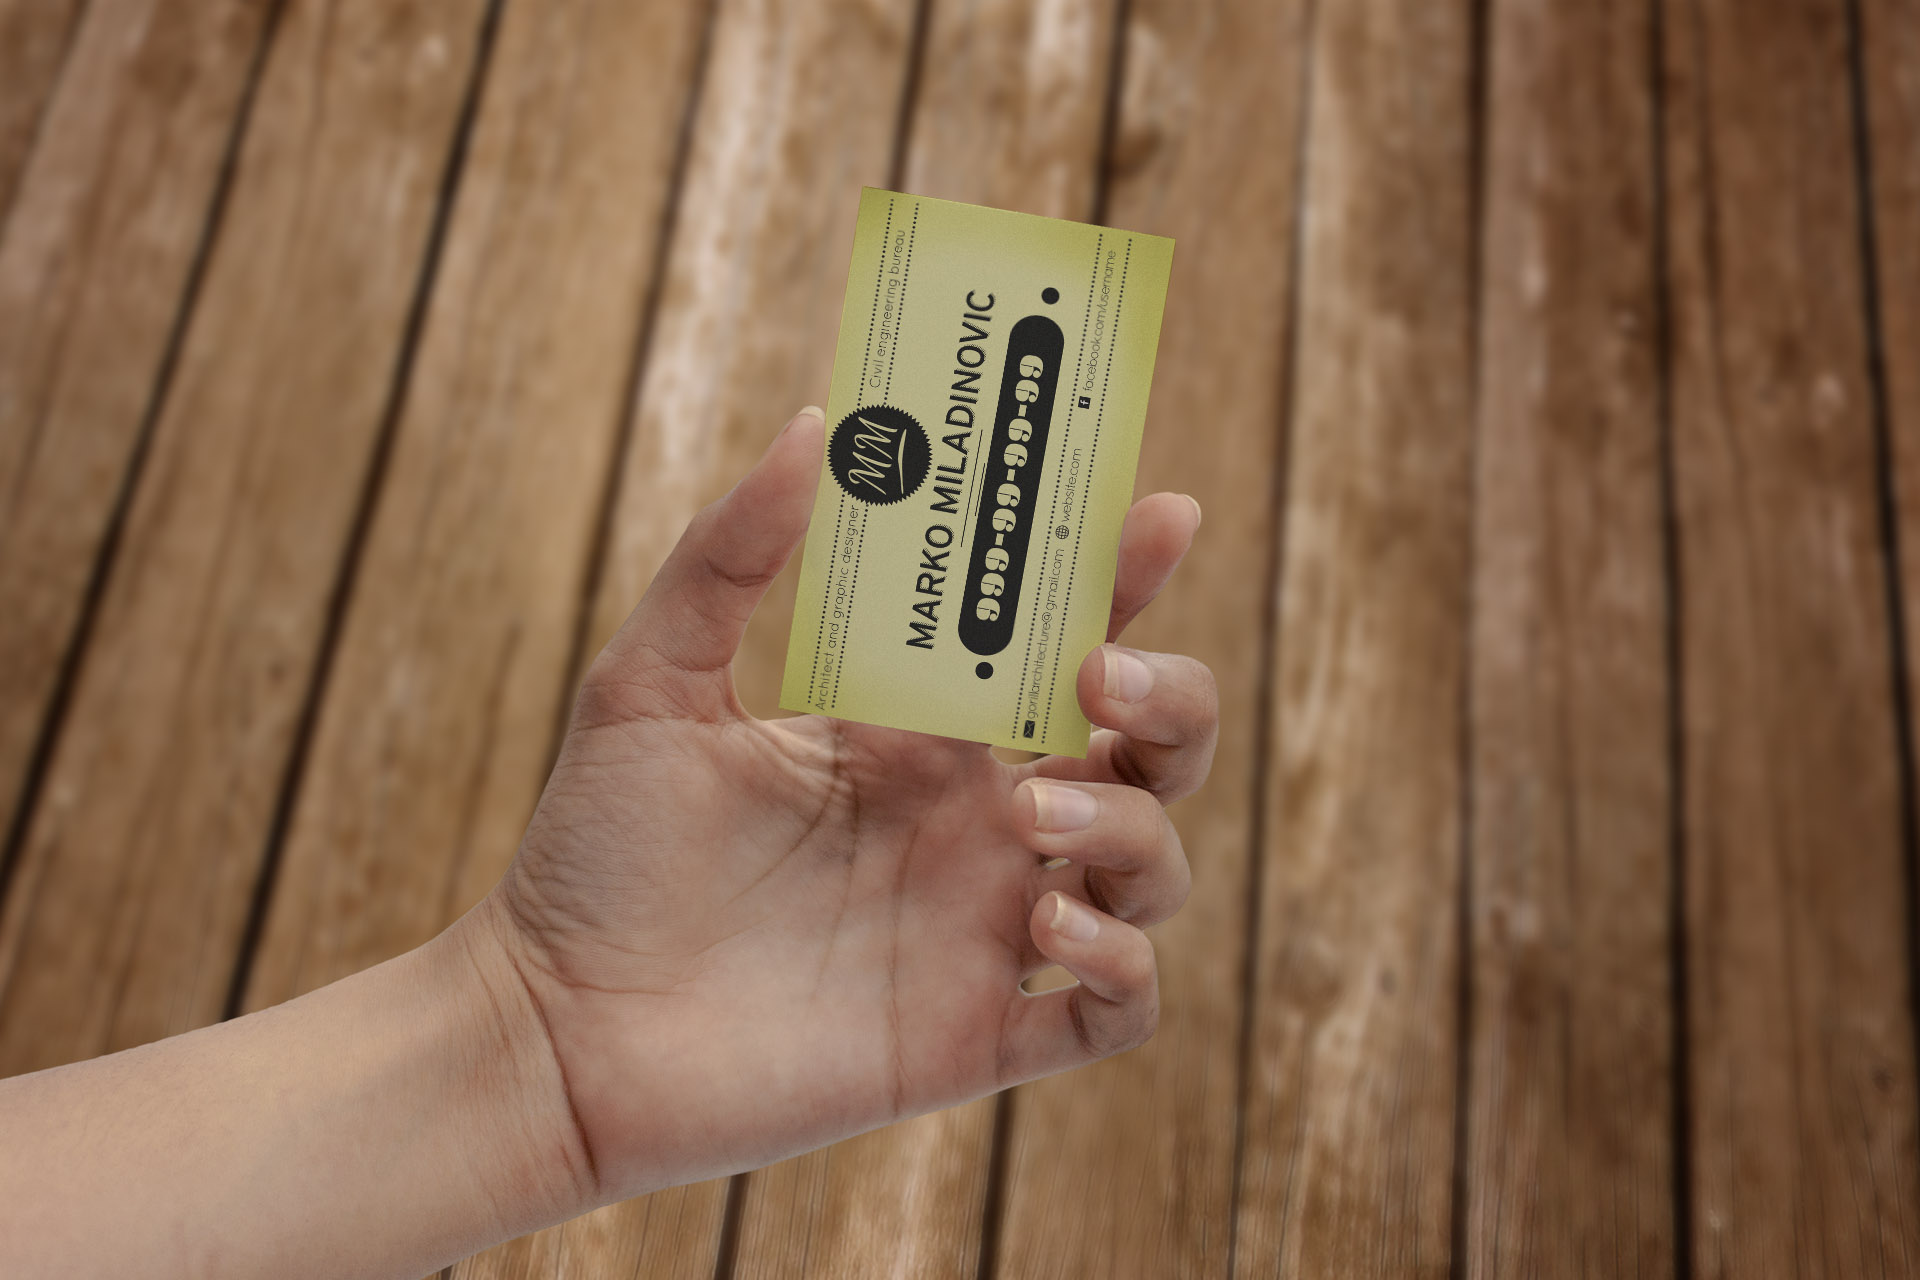 make 3 hand mock ups with your bussines card